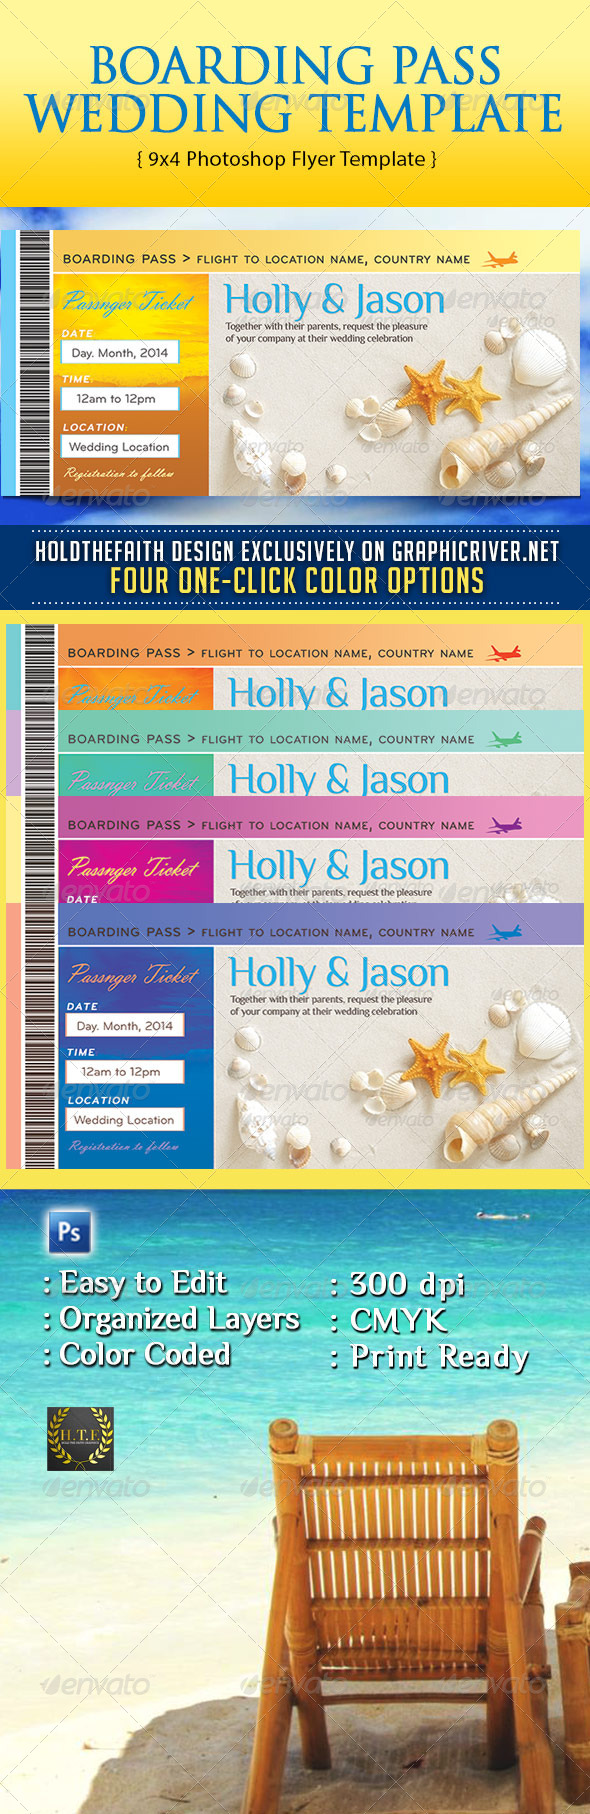 GraphicRiver Boarding Pass Wedding Template 7375738